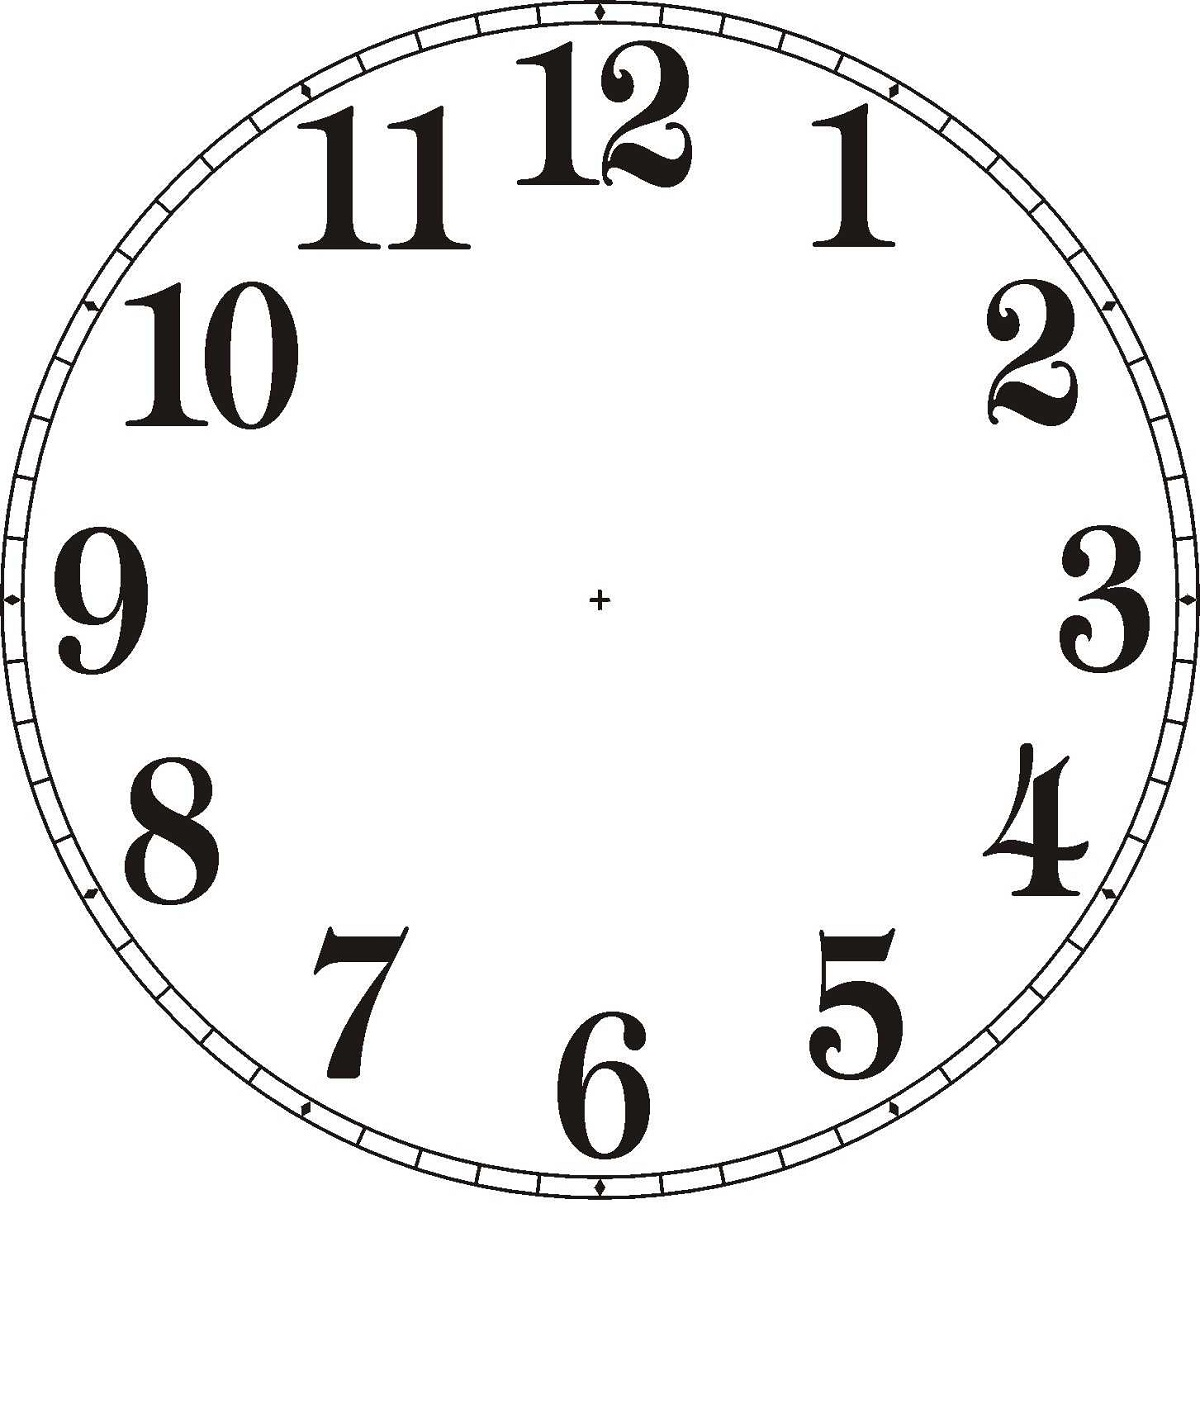 clock face image printable